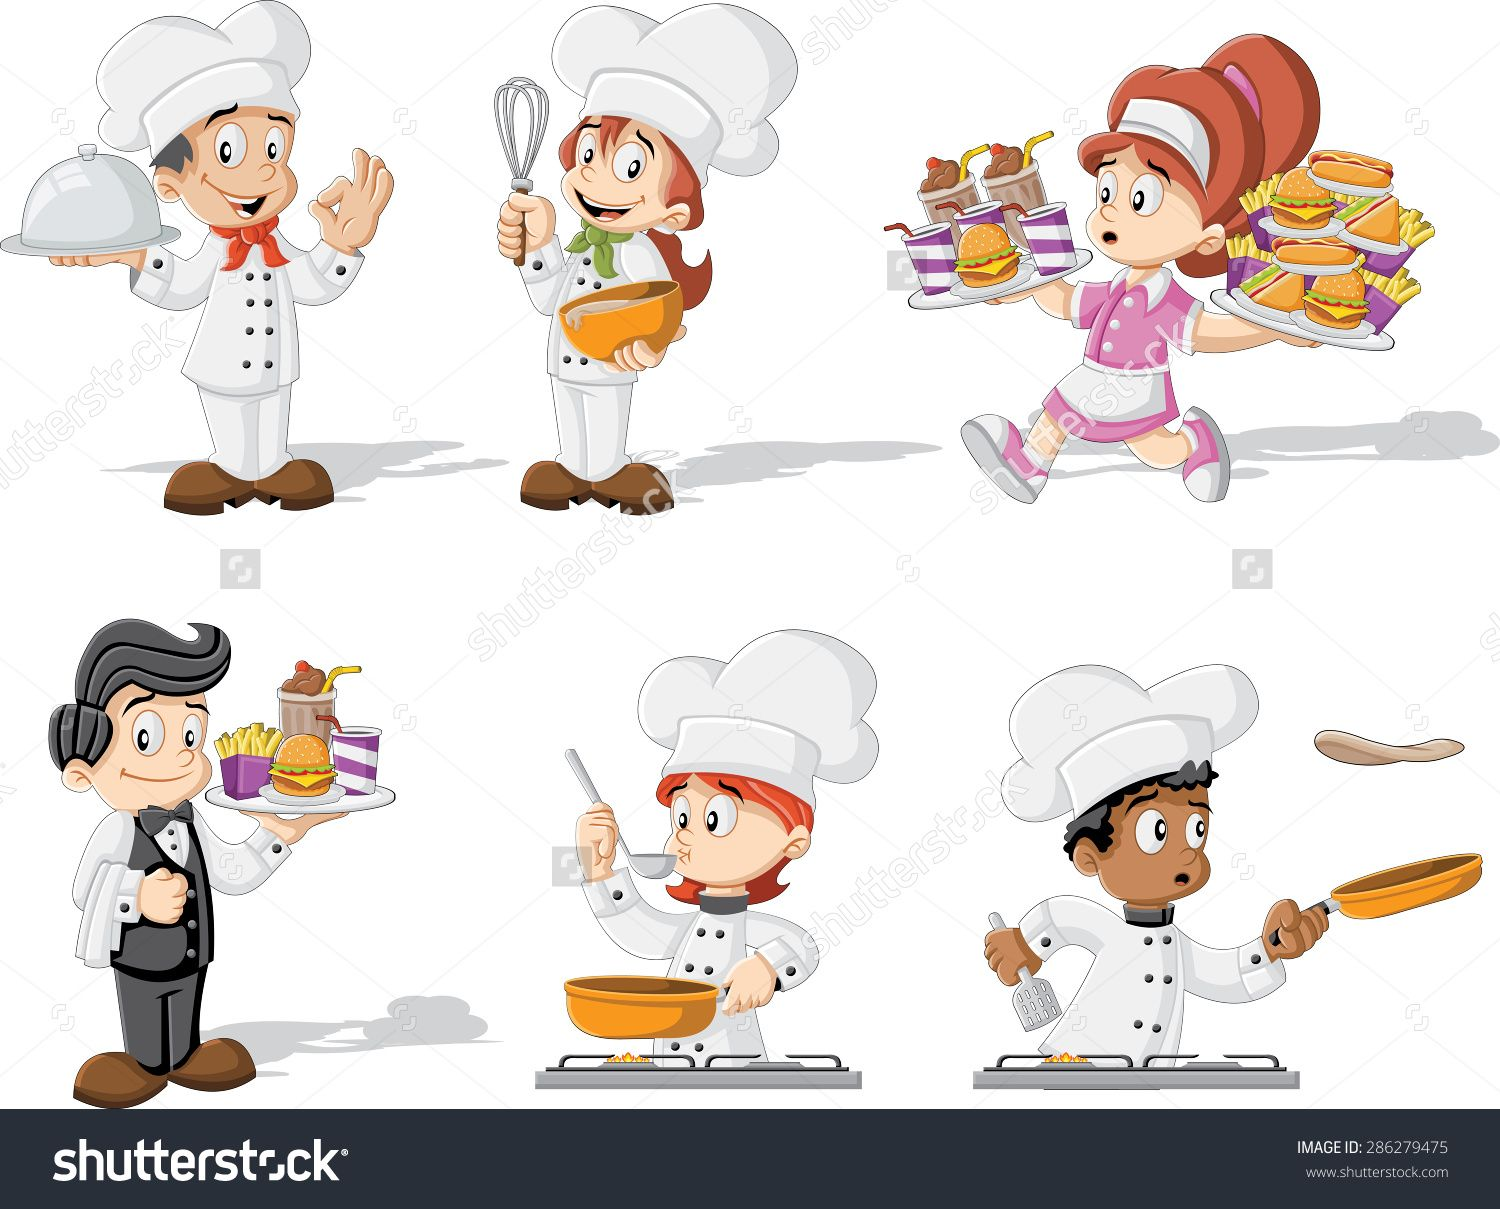 Waiters and waitresses clipart transparent library Funny Cartoon Clip Art Waitress | Cartoon chefs cooking ... transparent library